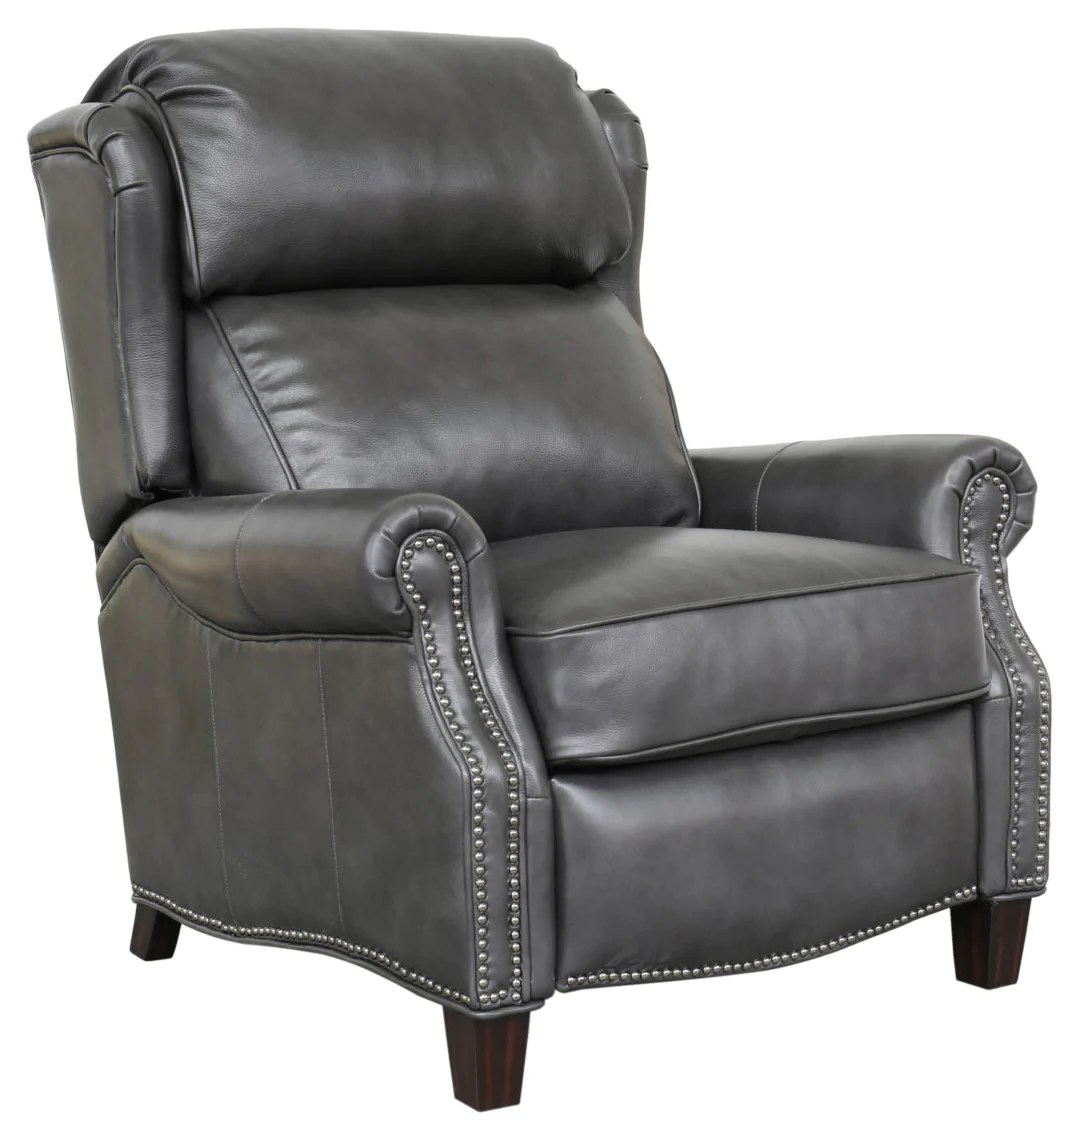 Wingback Recliner Chair Meade Small Scale Wing Back Leather Recliner